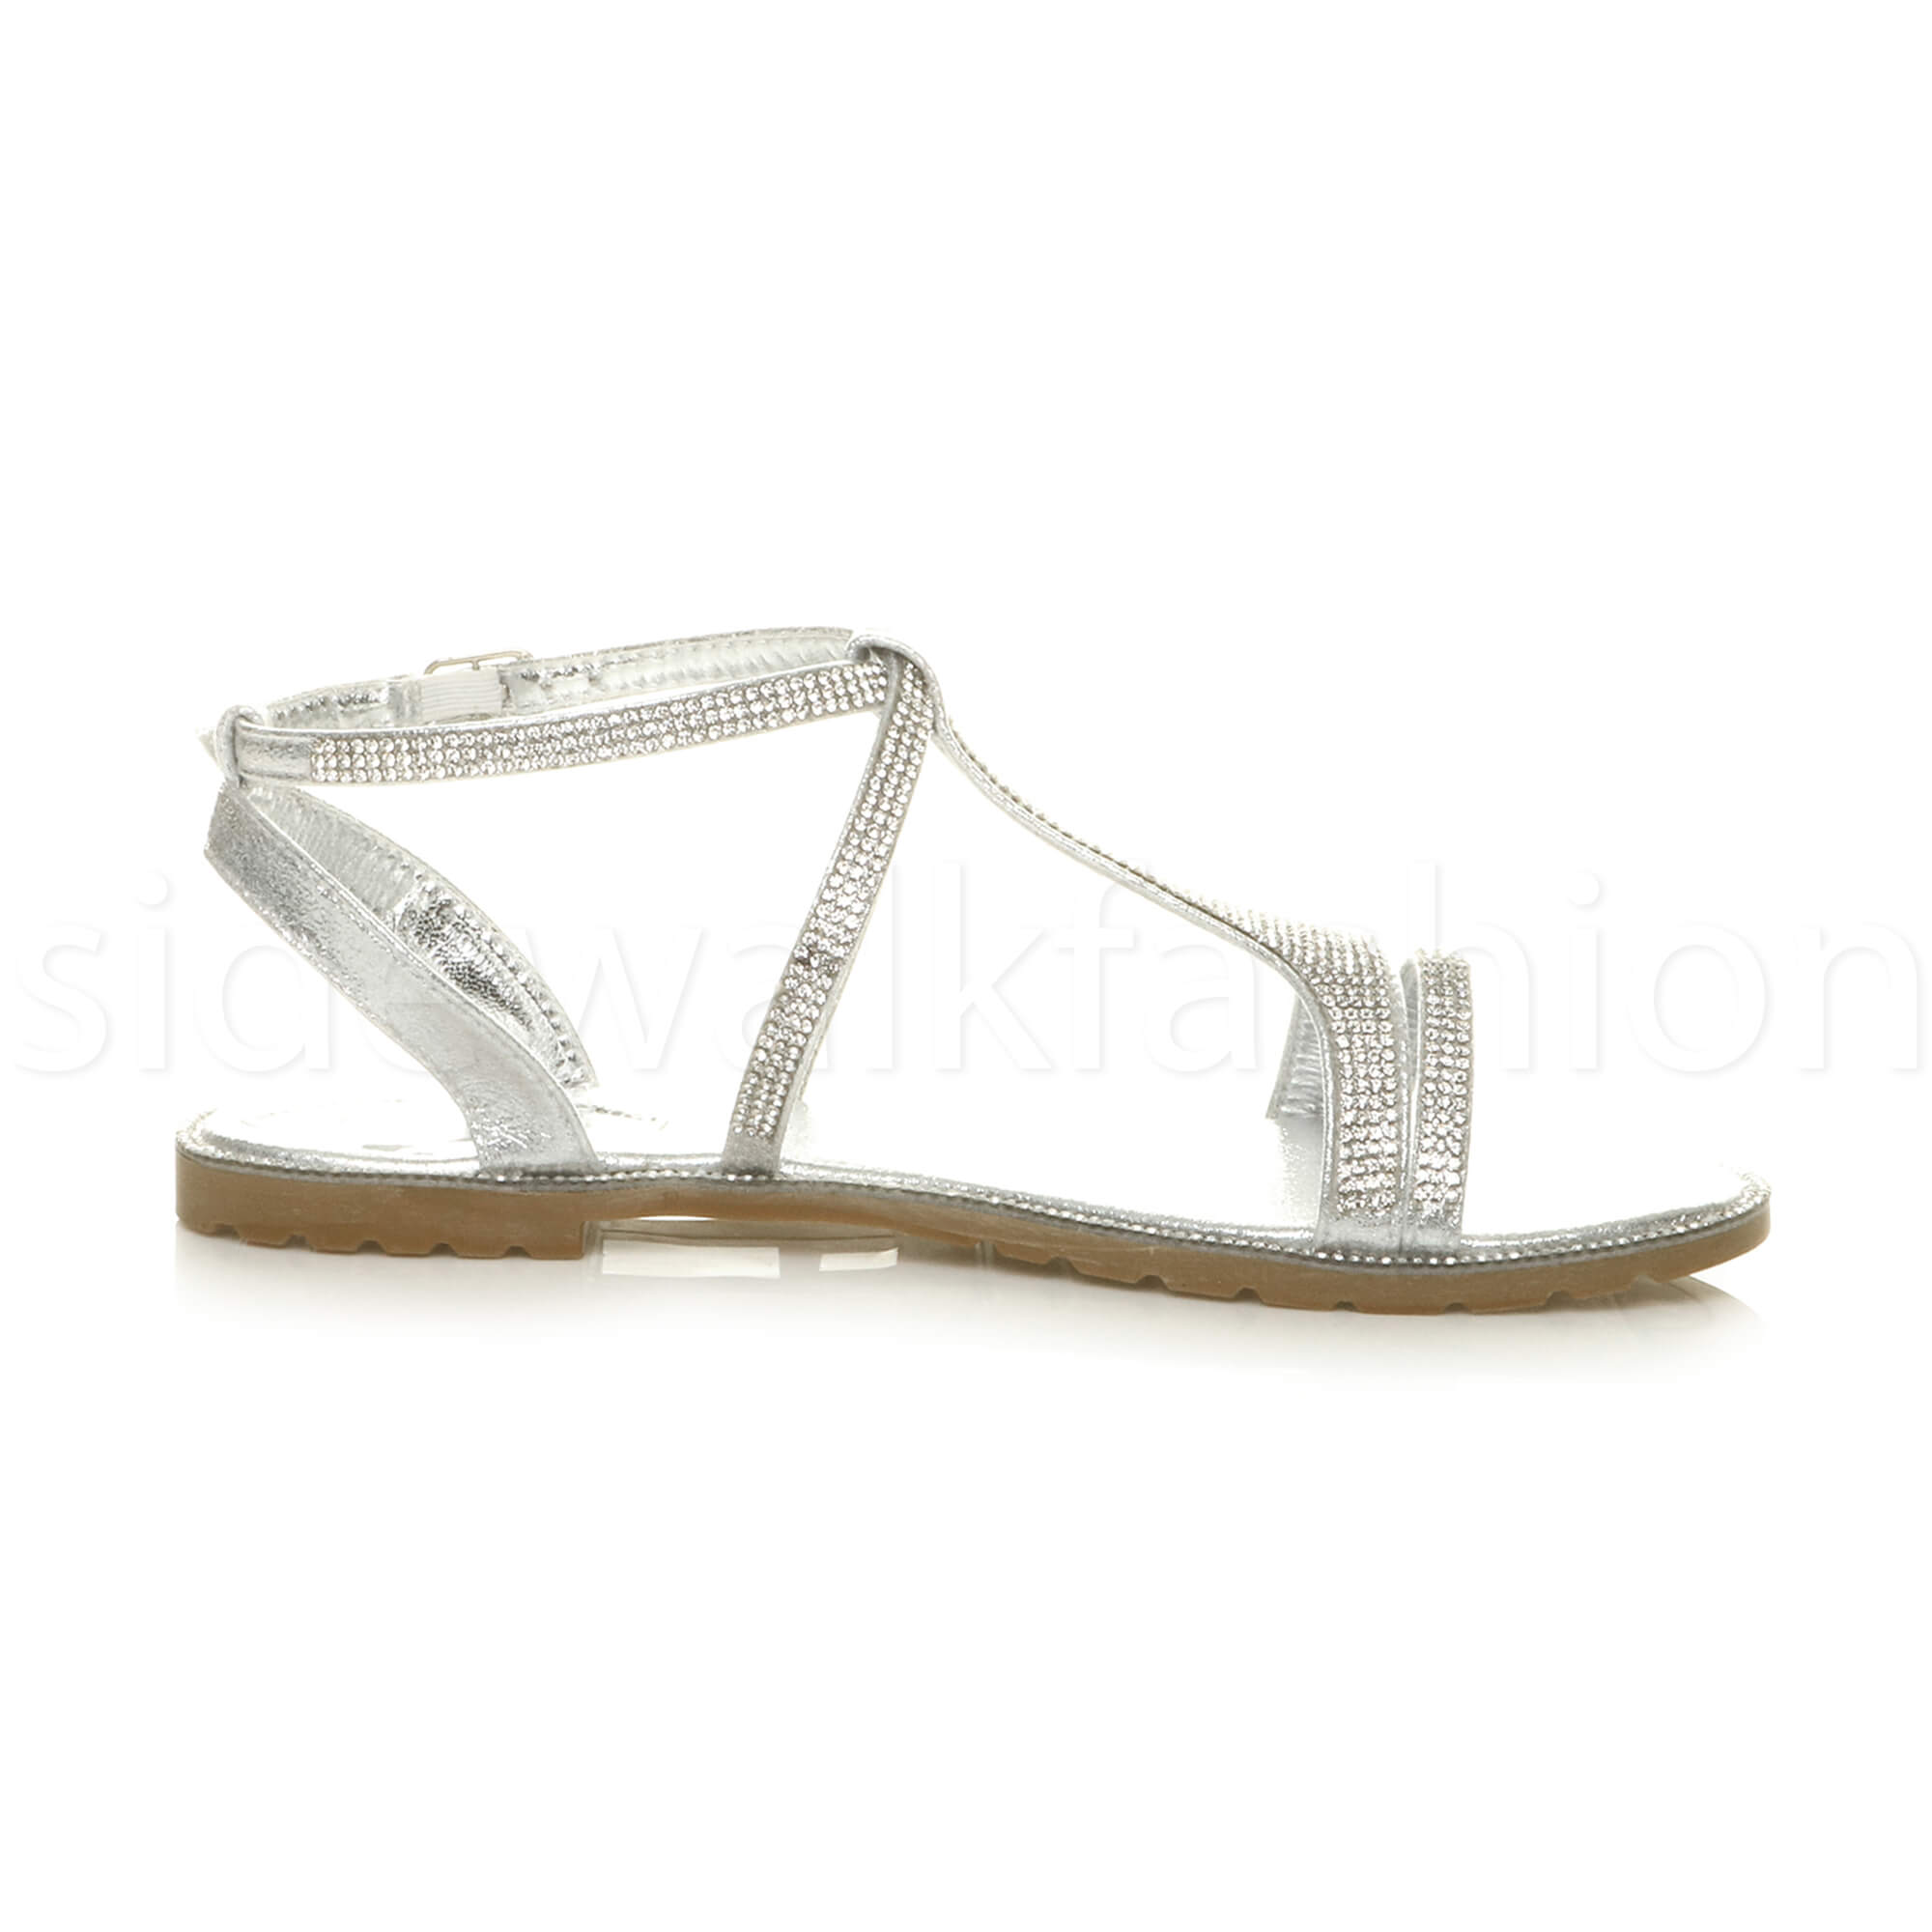 92e875887c0ee6 Womens Ladies Flat Strappy Summer T-bar Sparkly Diamante Evening ...